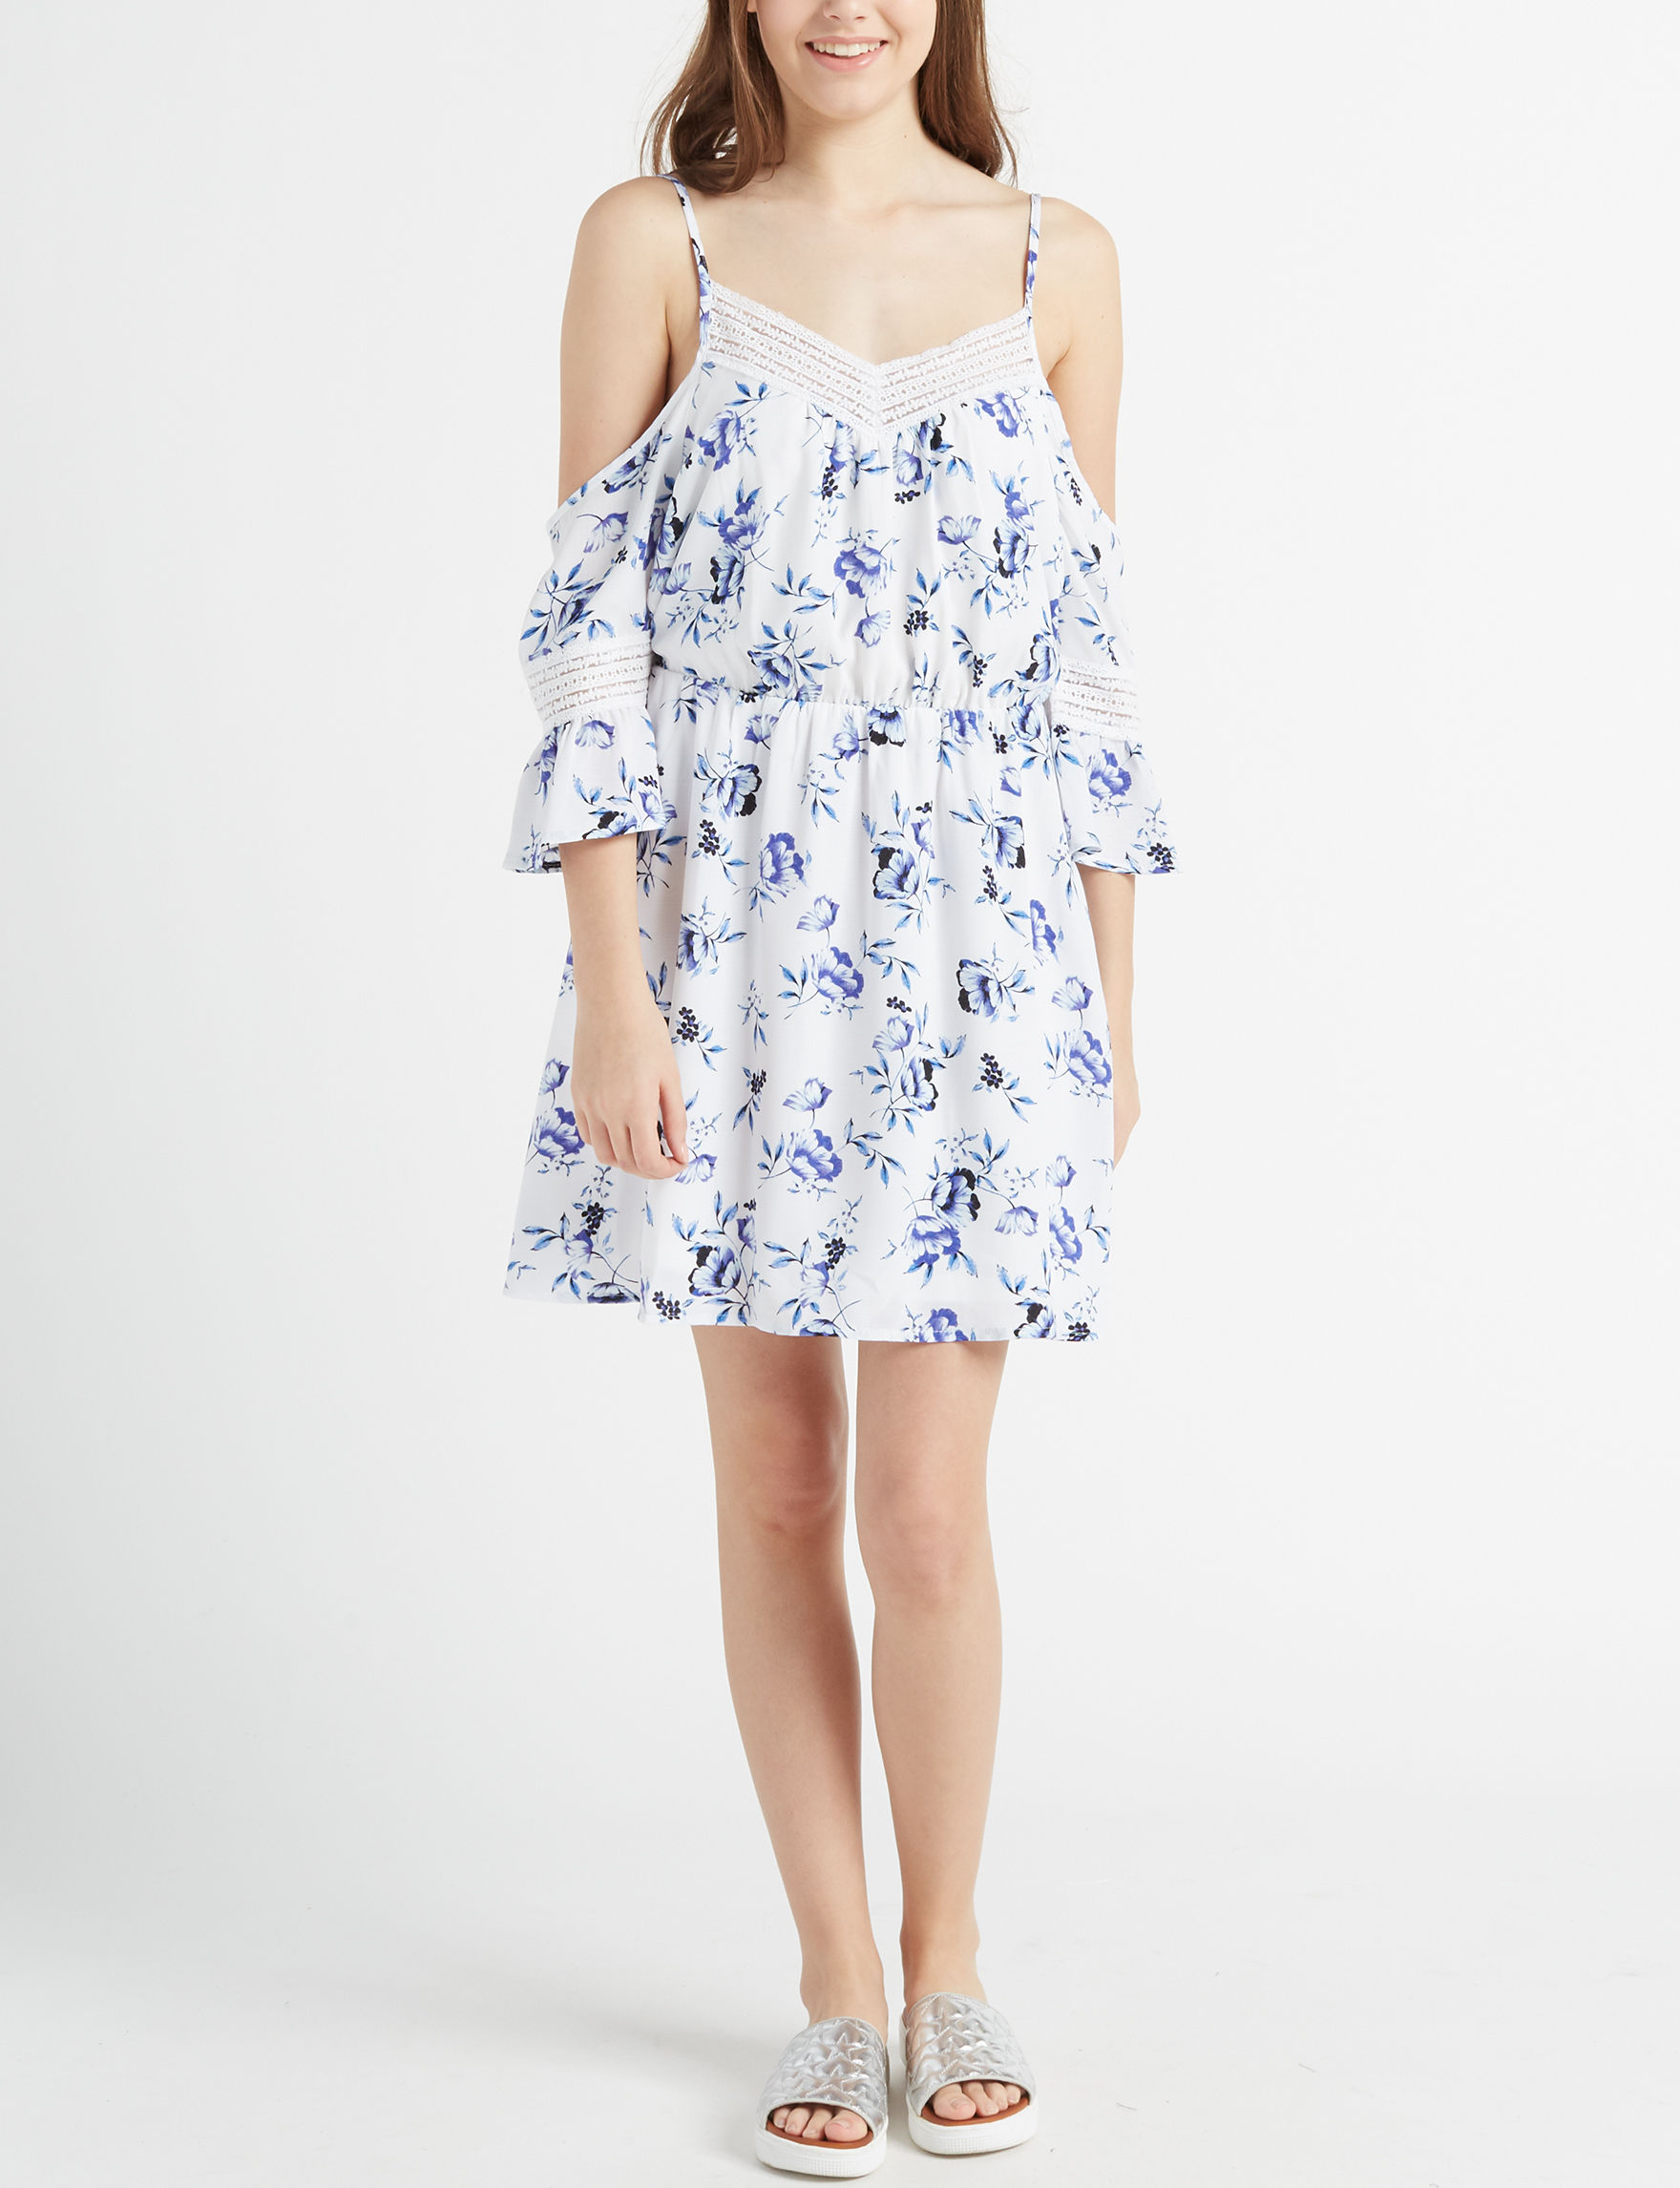 Sequin Hearts Blue / White Everyday & Casual Fit & Flare Dresses